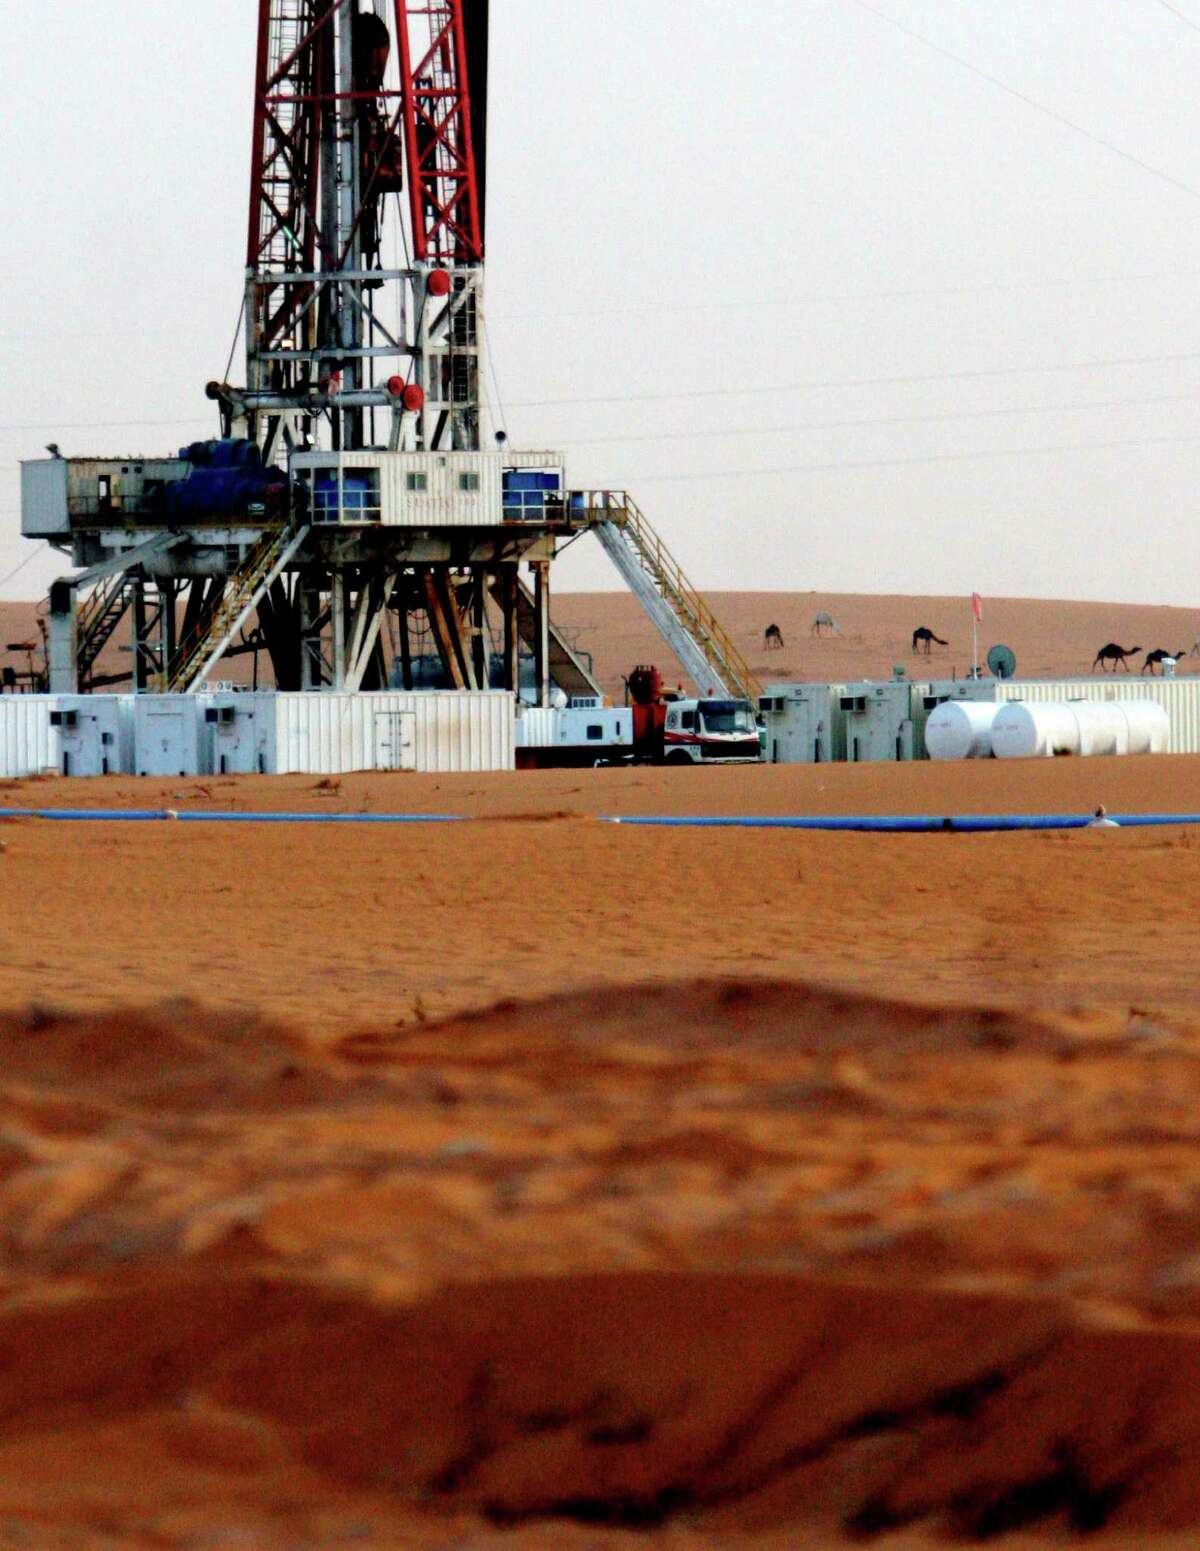 Saudi Arabia is OPEC's leading oil producer, pumping 9.6 million barrels per day last month from desert locations including the Khurais oil field about 60 miles southeast of Riyadh (AP Photo/Hasan Jamali)